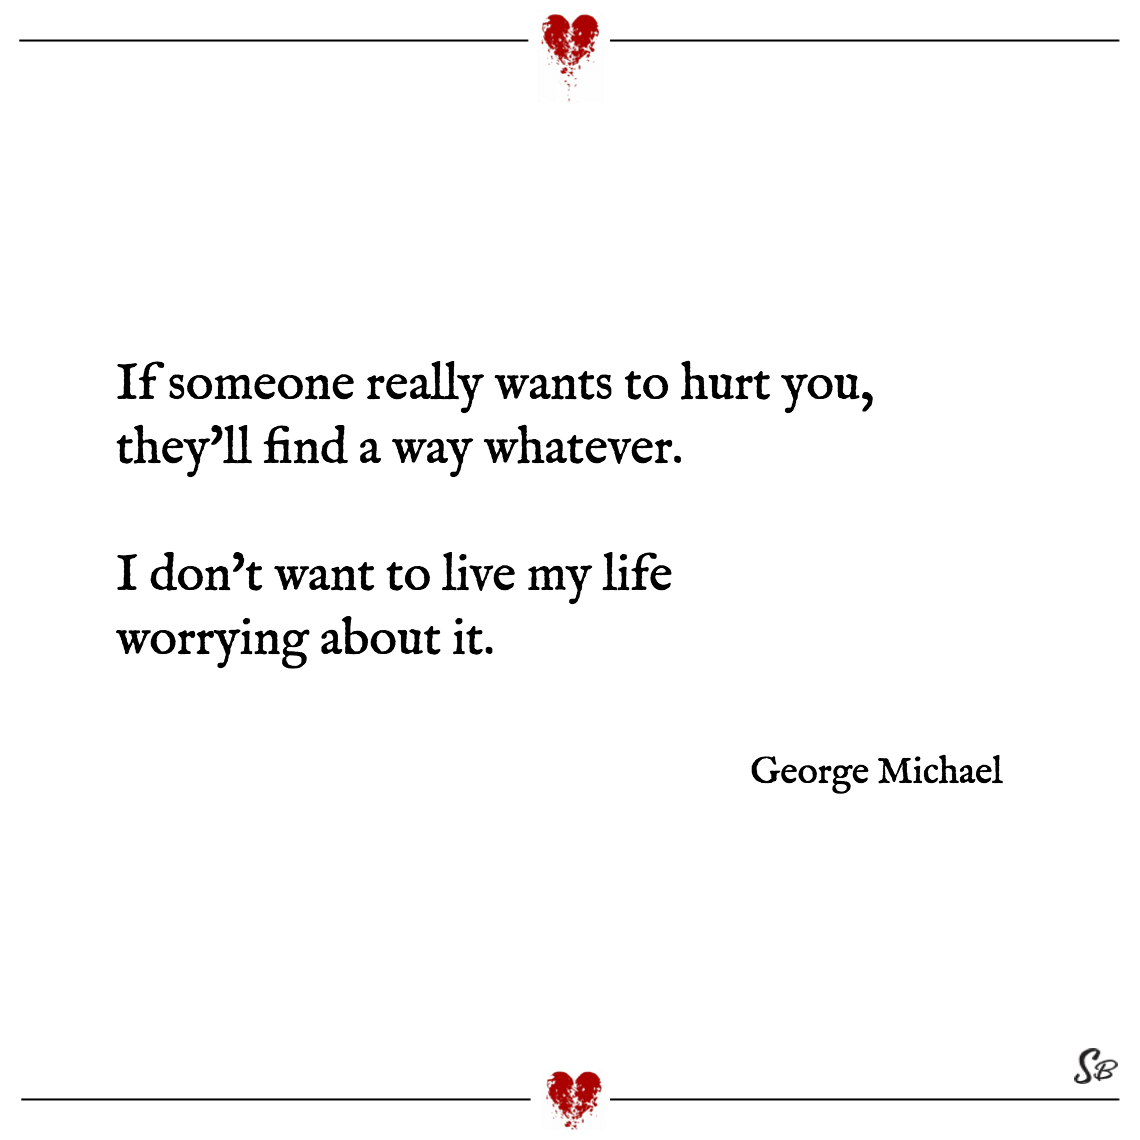 If someone really wants to hurt you, they'll find a way whatever. i don't want to live my life worrying about it. george michael